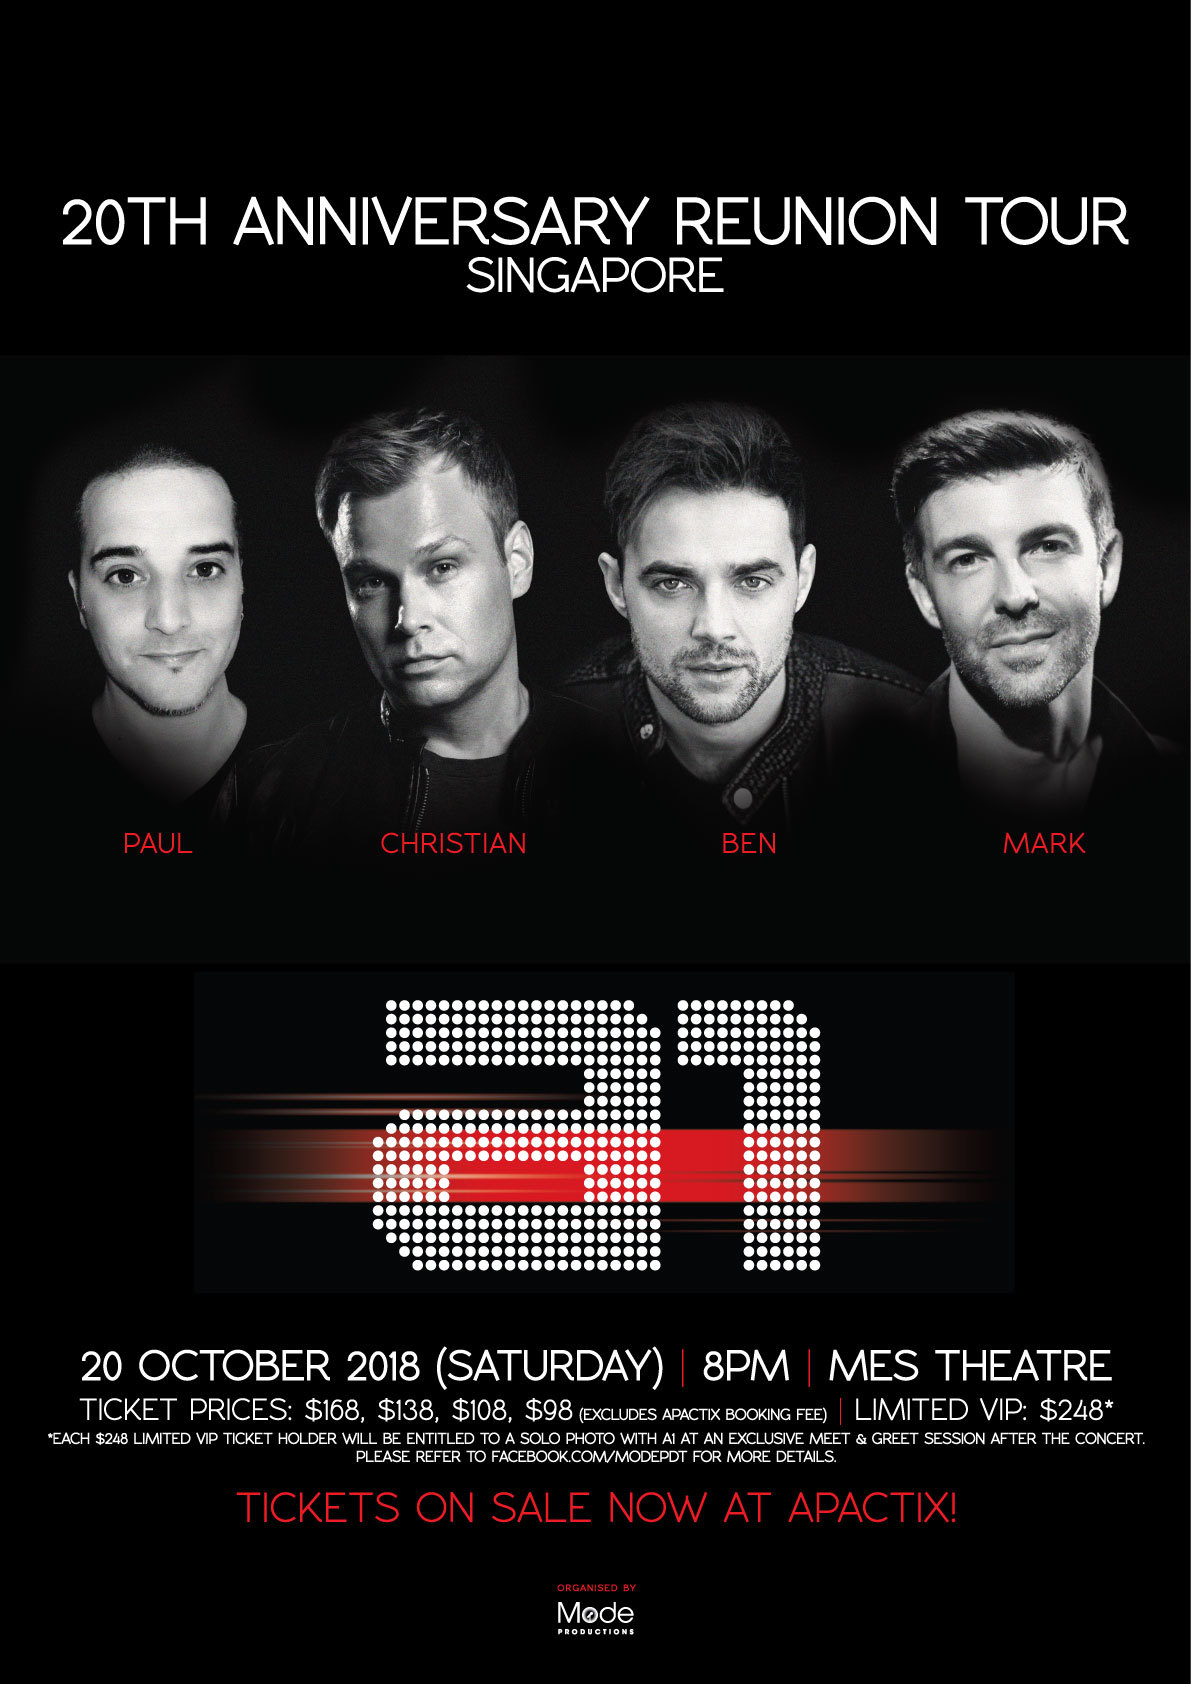 Boyband a1 reunite for 20th anniversary tour which is coming to an error occurred m4hsunfo